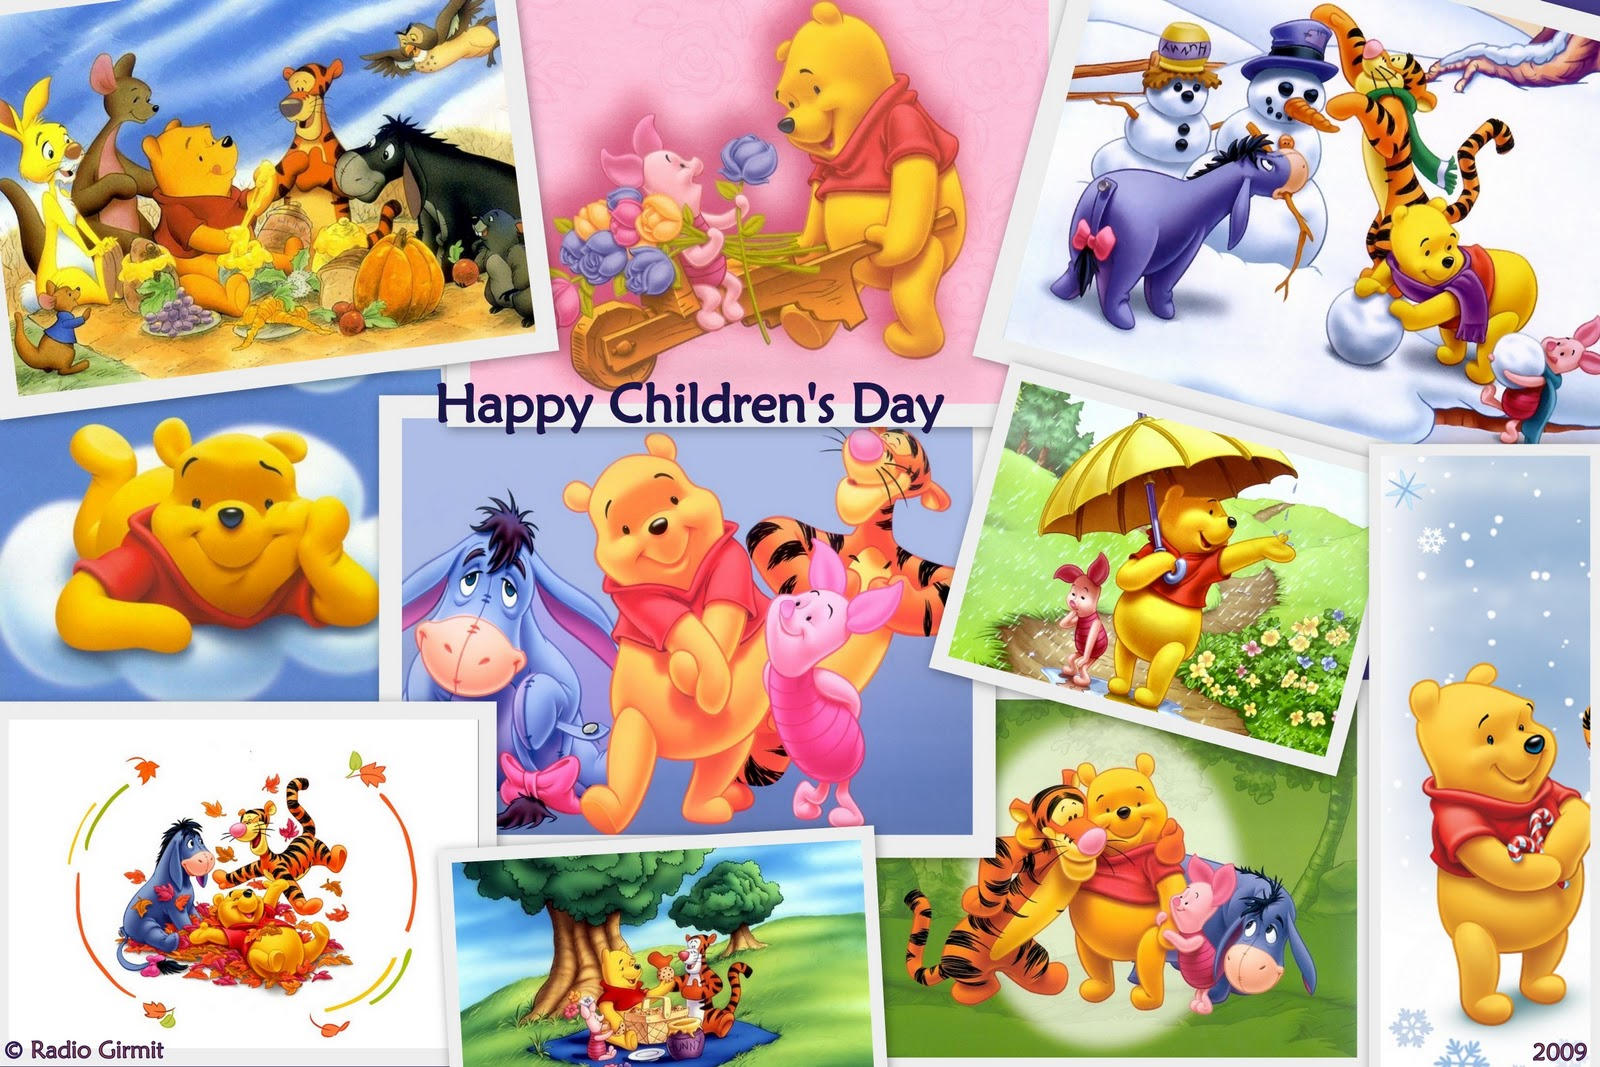 Picturespool Childrens Day Wallpaper Greetings Kidsfundrawing